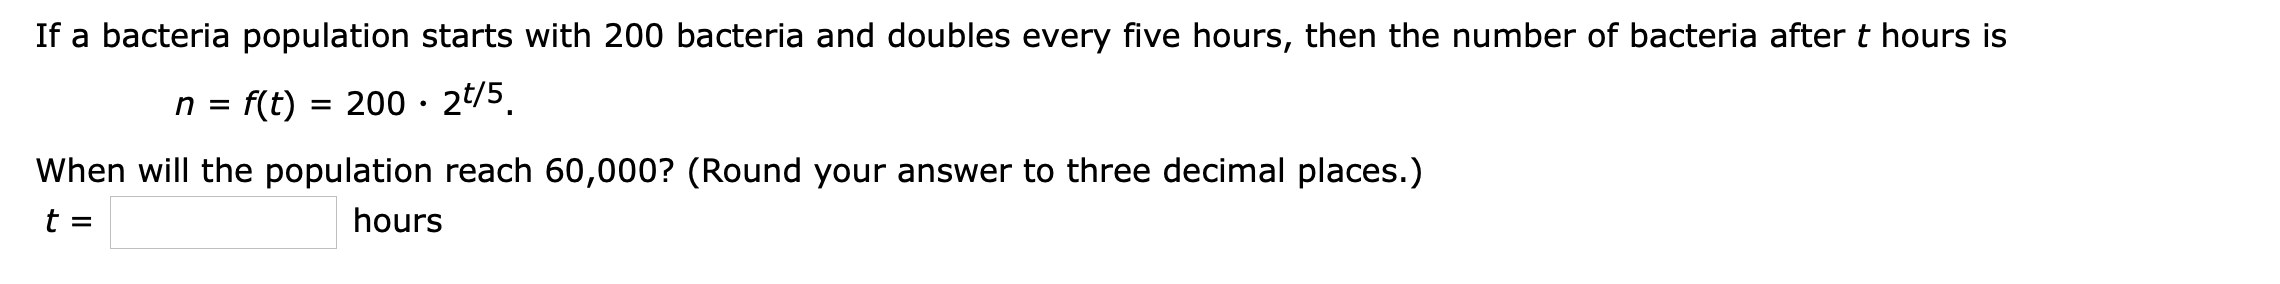 If a bacteria population starts with 200 bacteria and doubles every five hours, then the number of bacteria after t hours is f(t) 200 2t/5 n= When will the population reach 60,000? (Round your answer to three decimal places.) hours t =